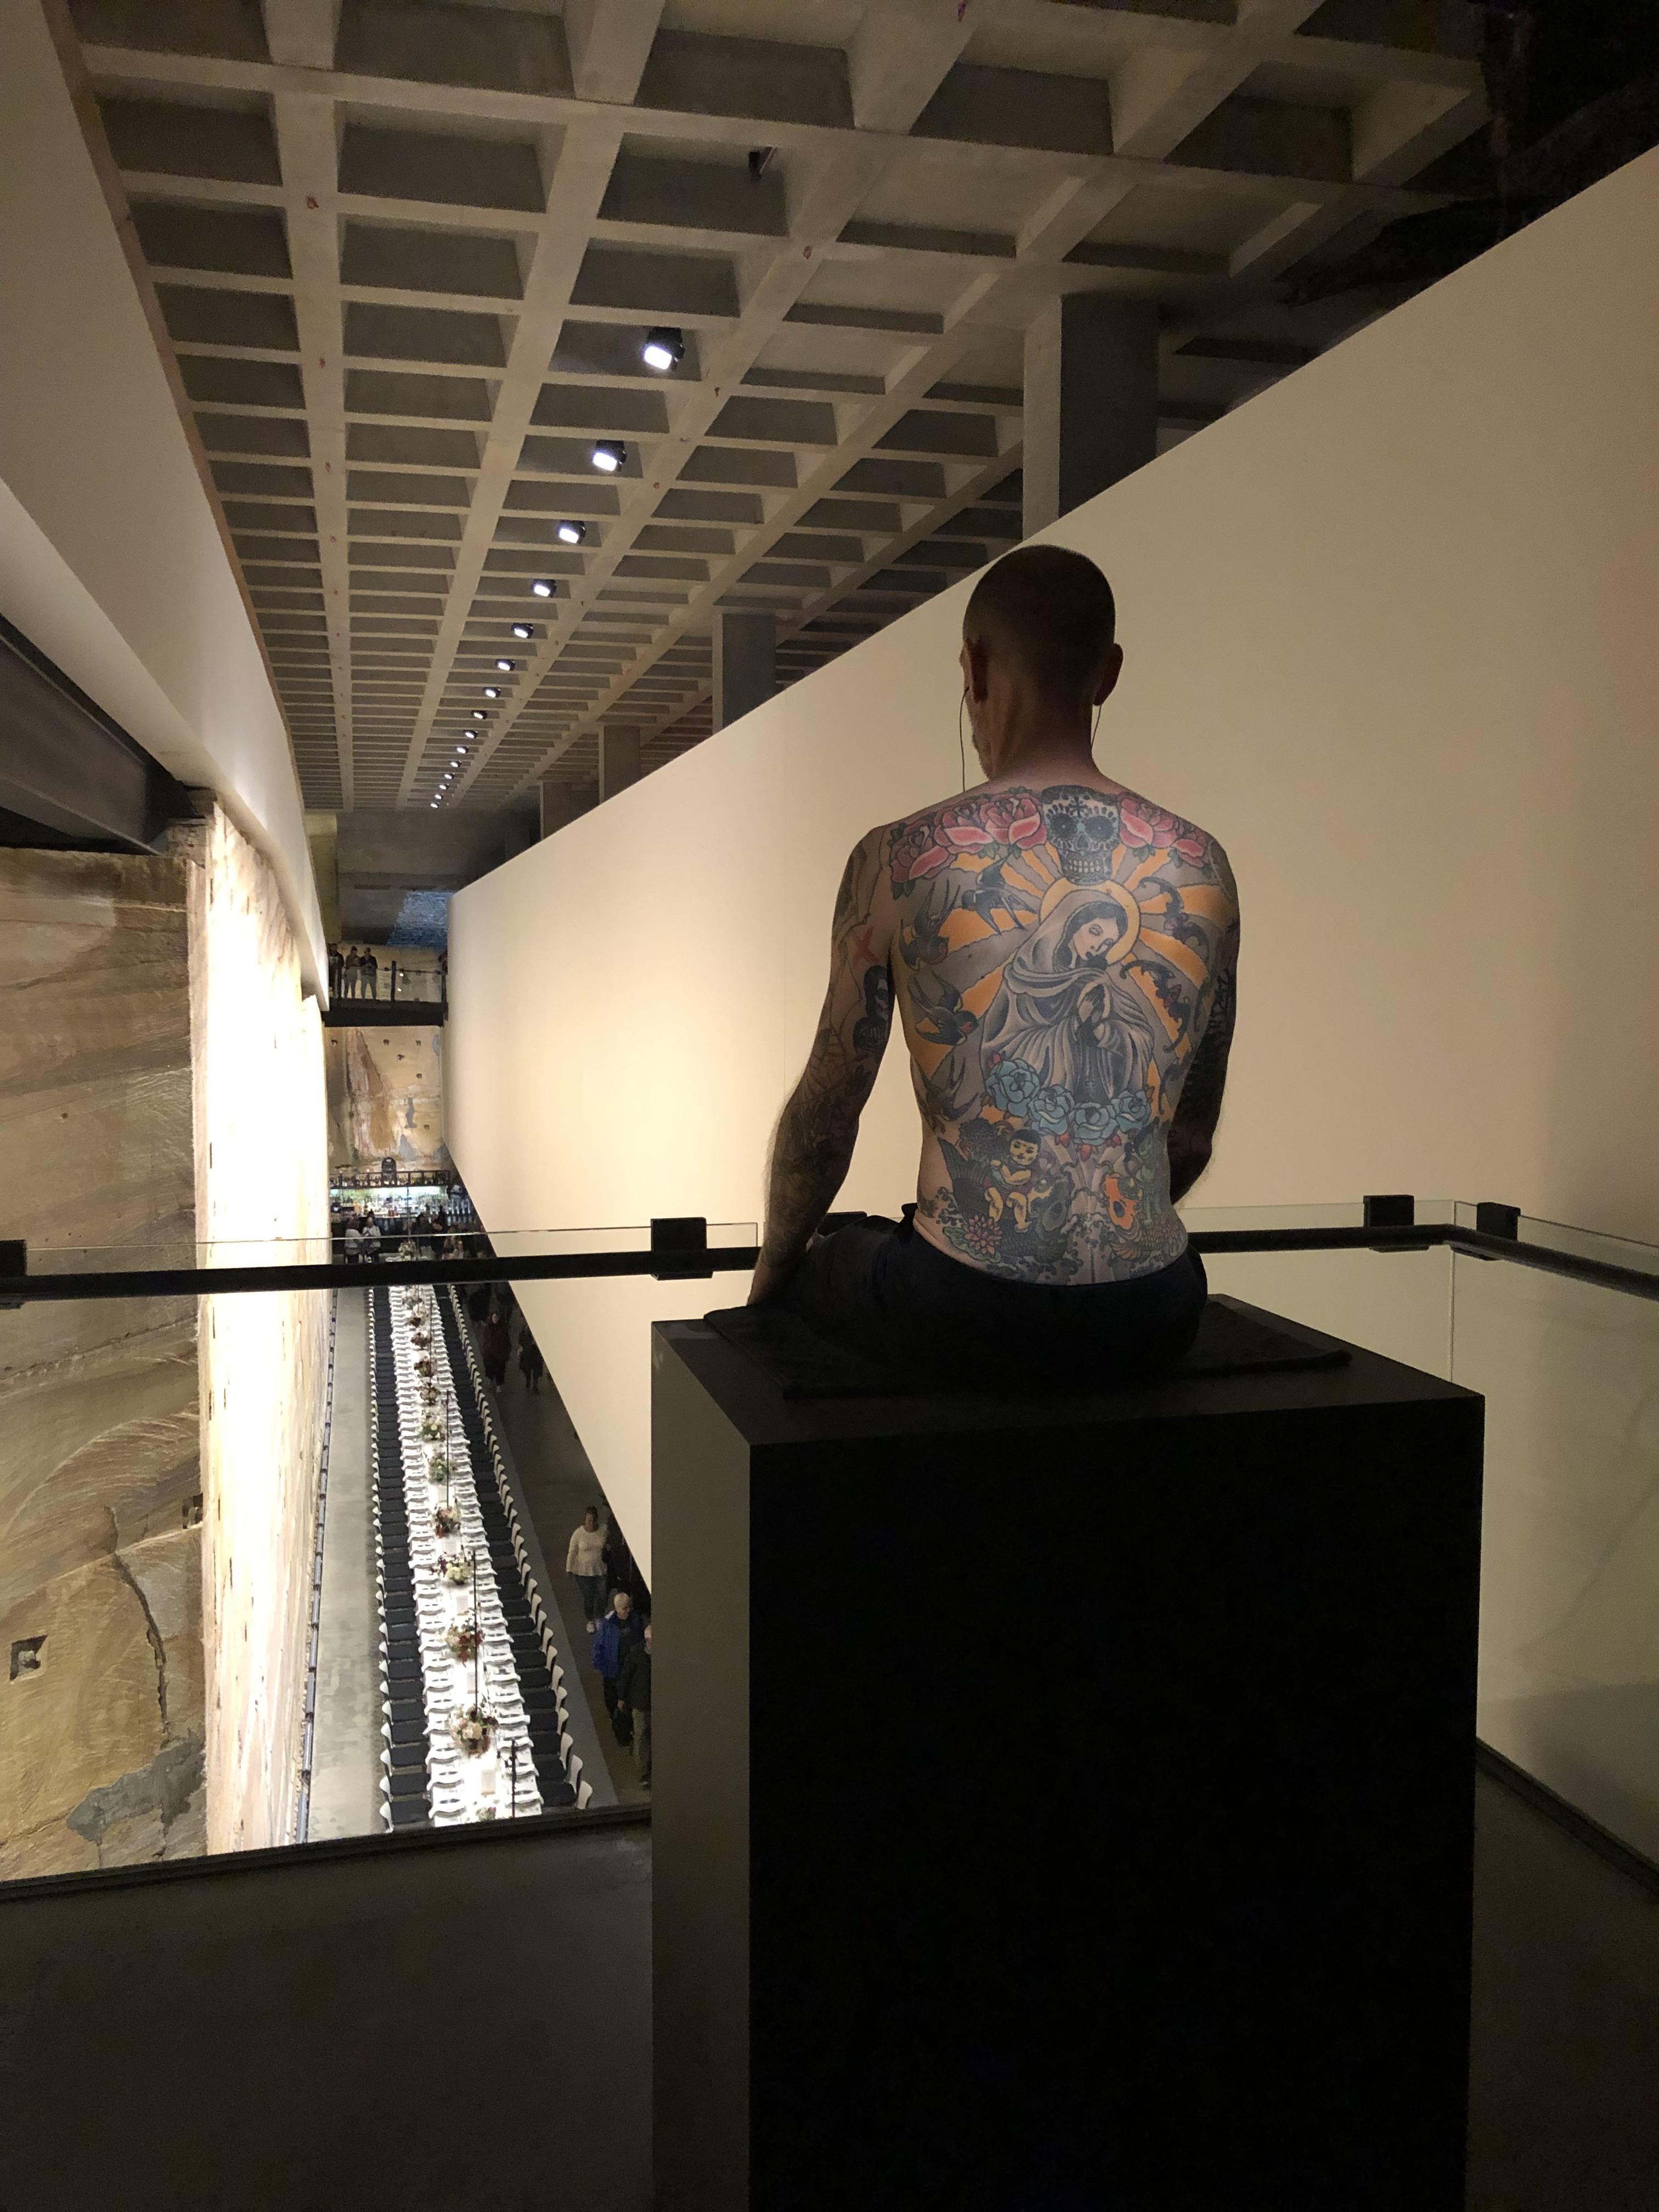 Tim, The Tattooed Man By Wim Delvoye